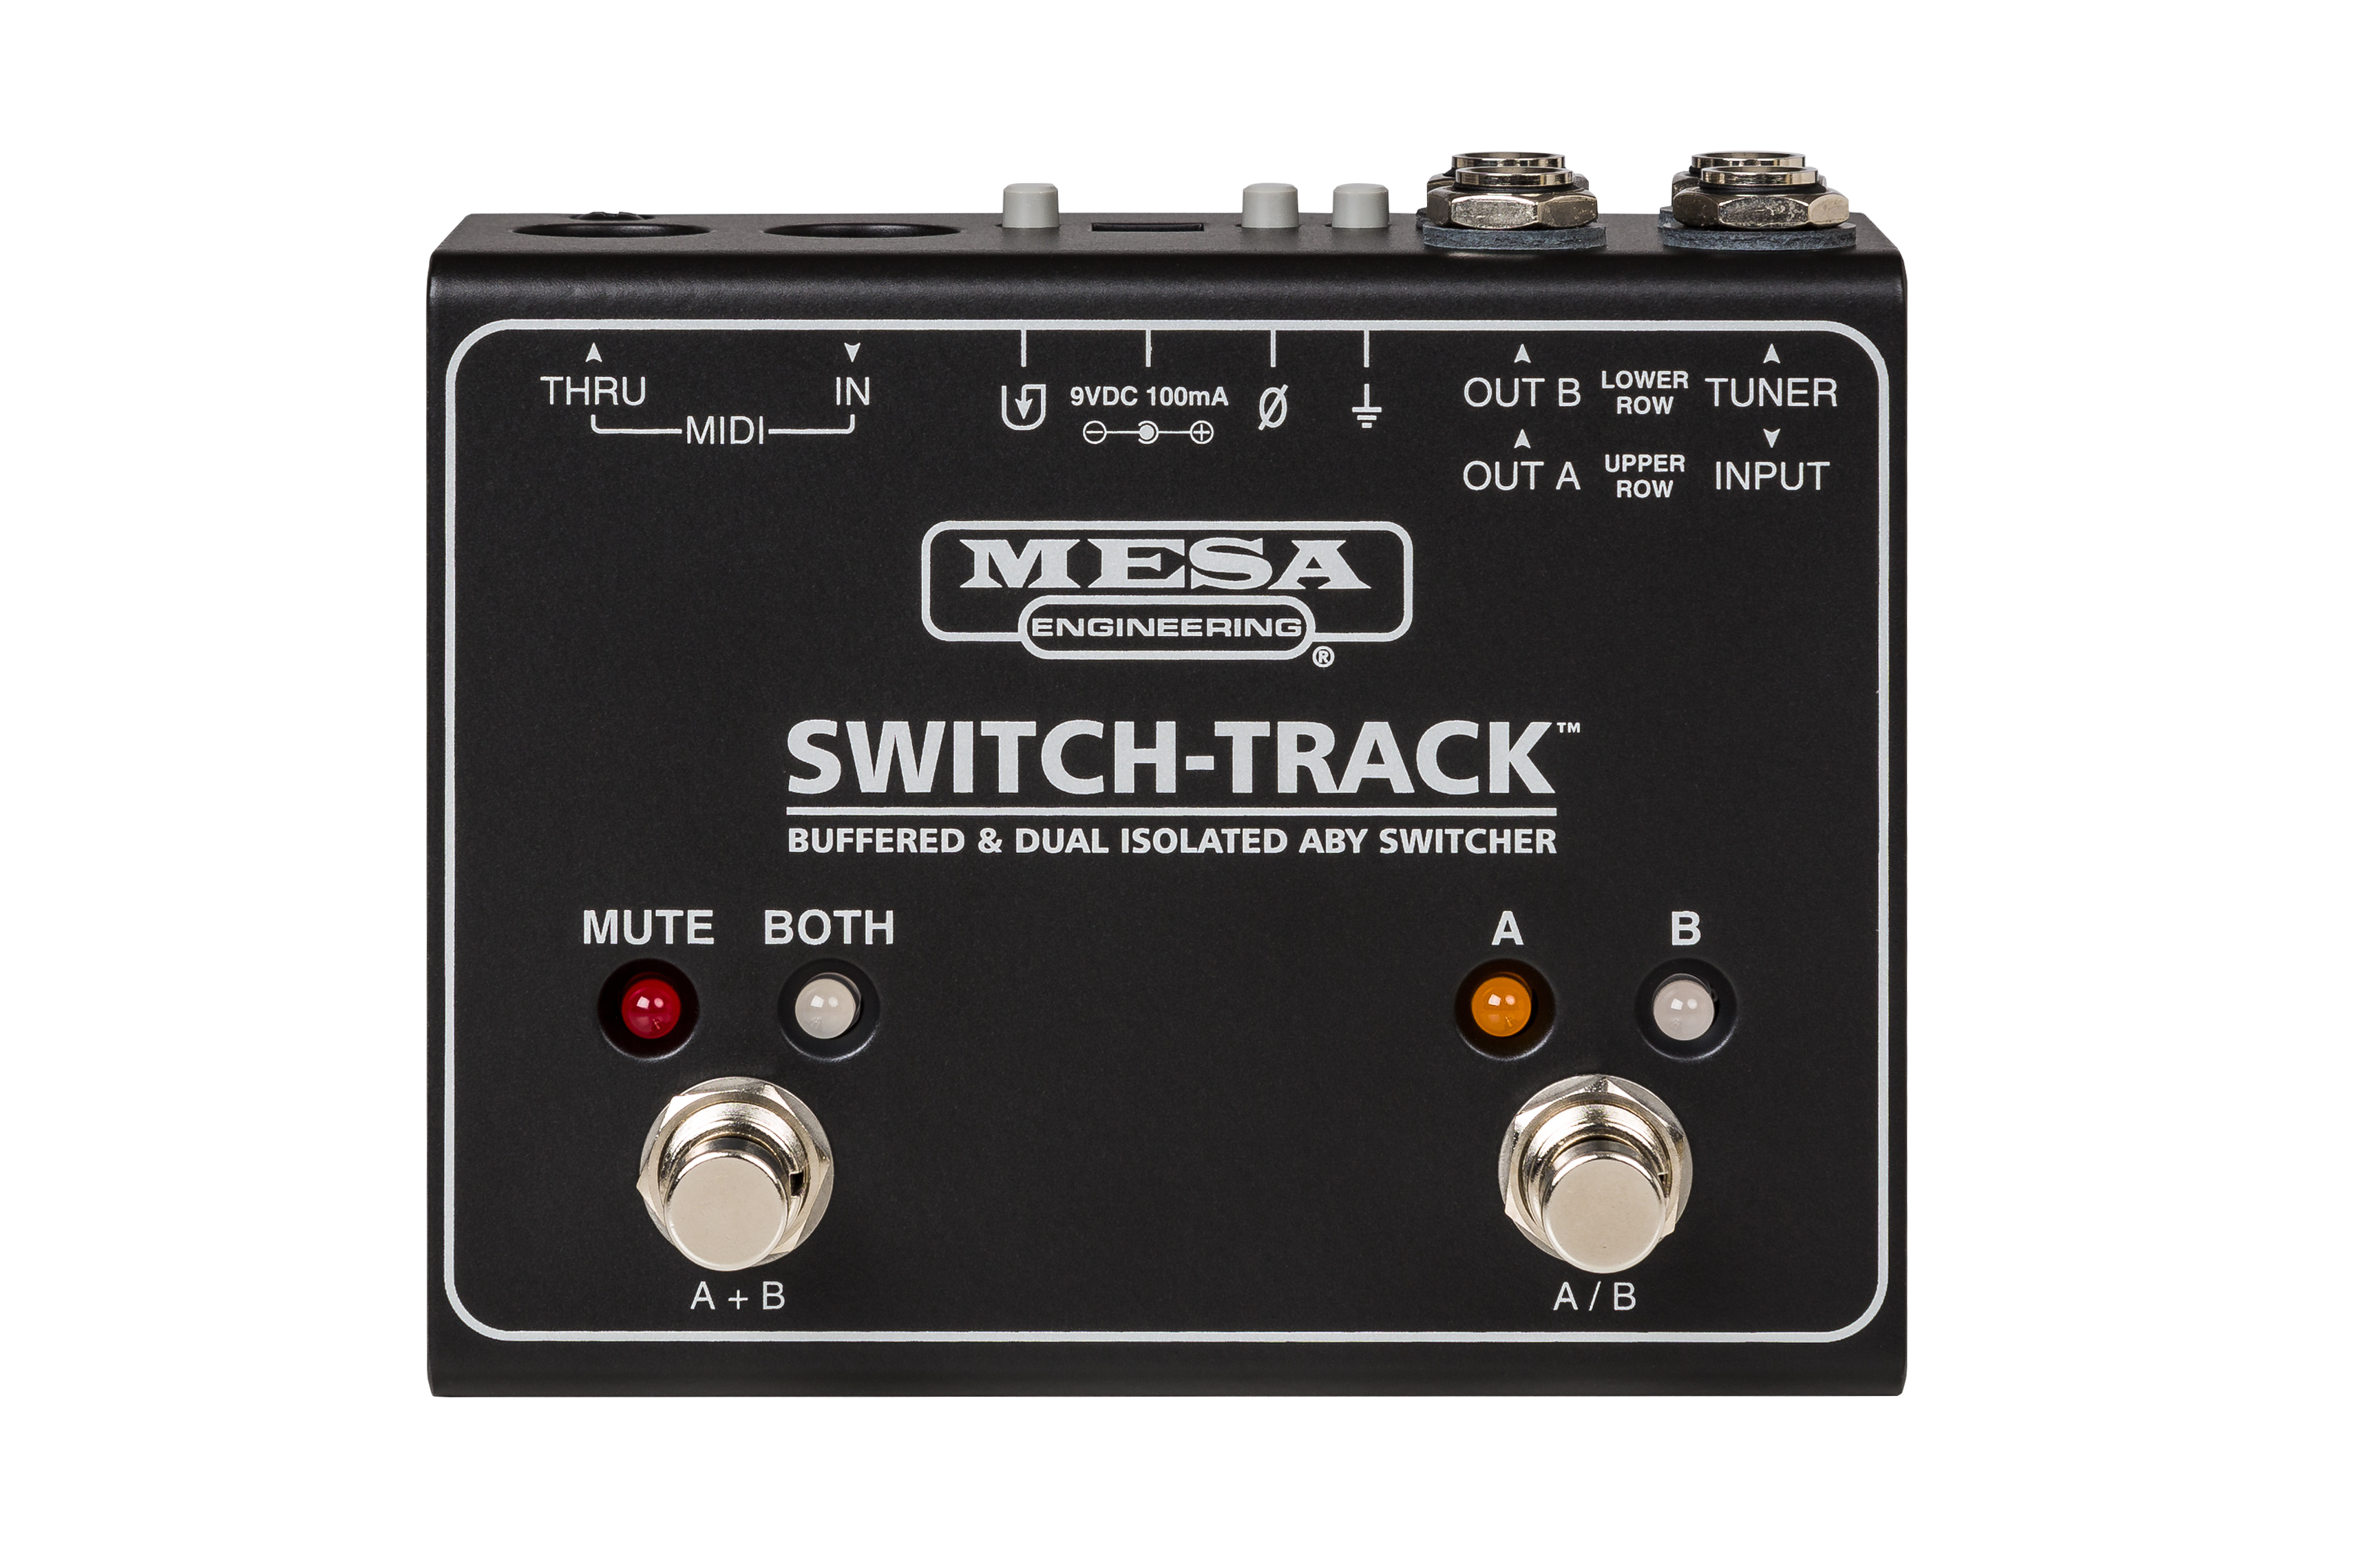 switch-track-front